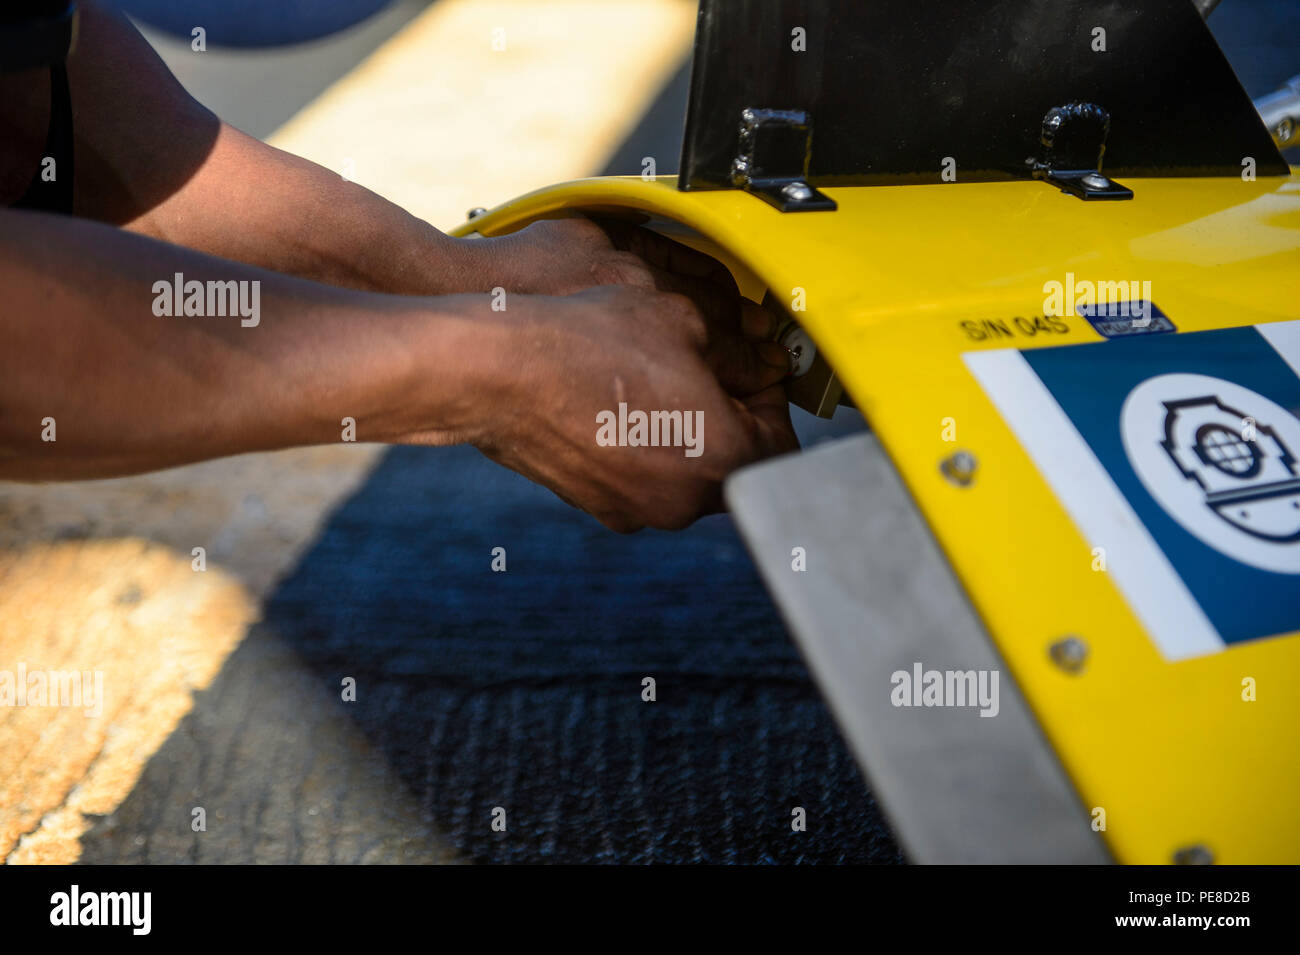 151023-N-RZ218-046   BAHAMAS (Oct. 23, 2015) Olden Glover, a contractor with Phoenix International Incorporated, prepares the tow pinger locater 25 (TPL 25) for the upcoming salvage mission aboard USNS Apache (T-ATF 172). USNS Apache departed Norfolk, Va., Oct. 19, to begin searching for wreckage from the missing U.S. Flagged merchant vessel El Faro. The ship is equipped with several pieces of underwater search equipment, including a voyage data recorder locator, side-scan sonar and an underwater remote operated vehicle. The Navy's mission will be to first locate the ship and, if possible, to  - Stock Image